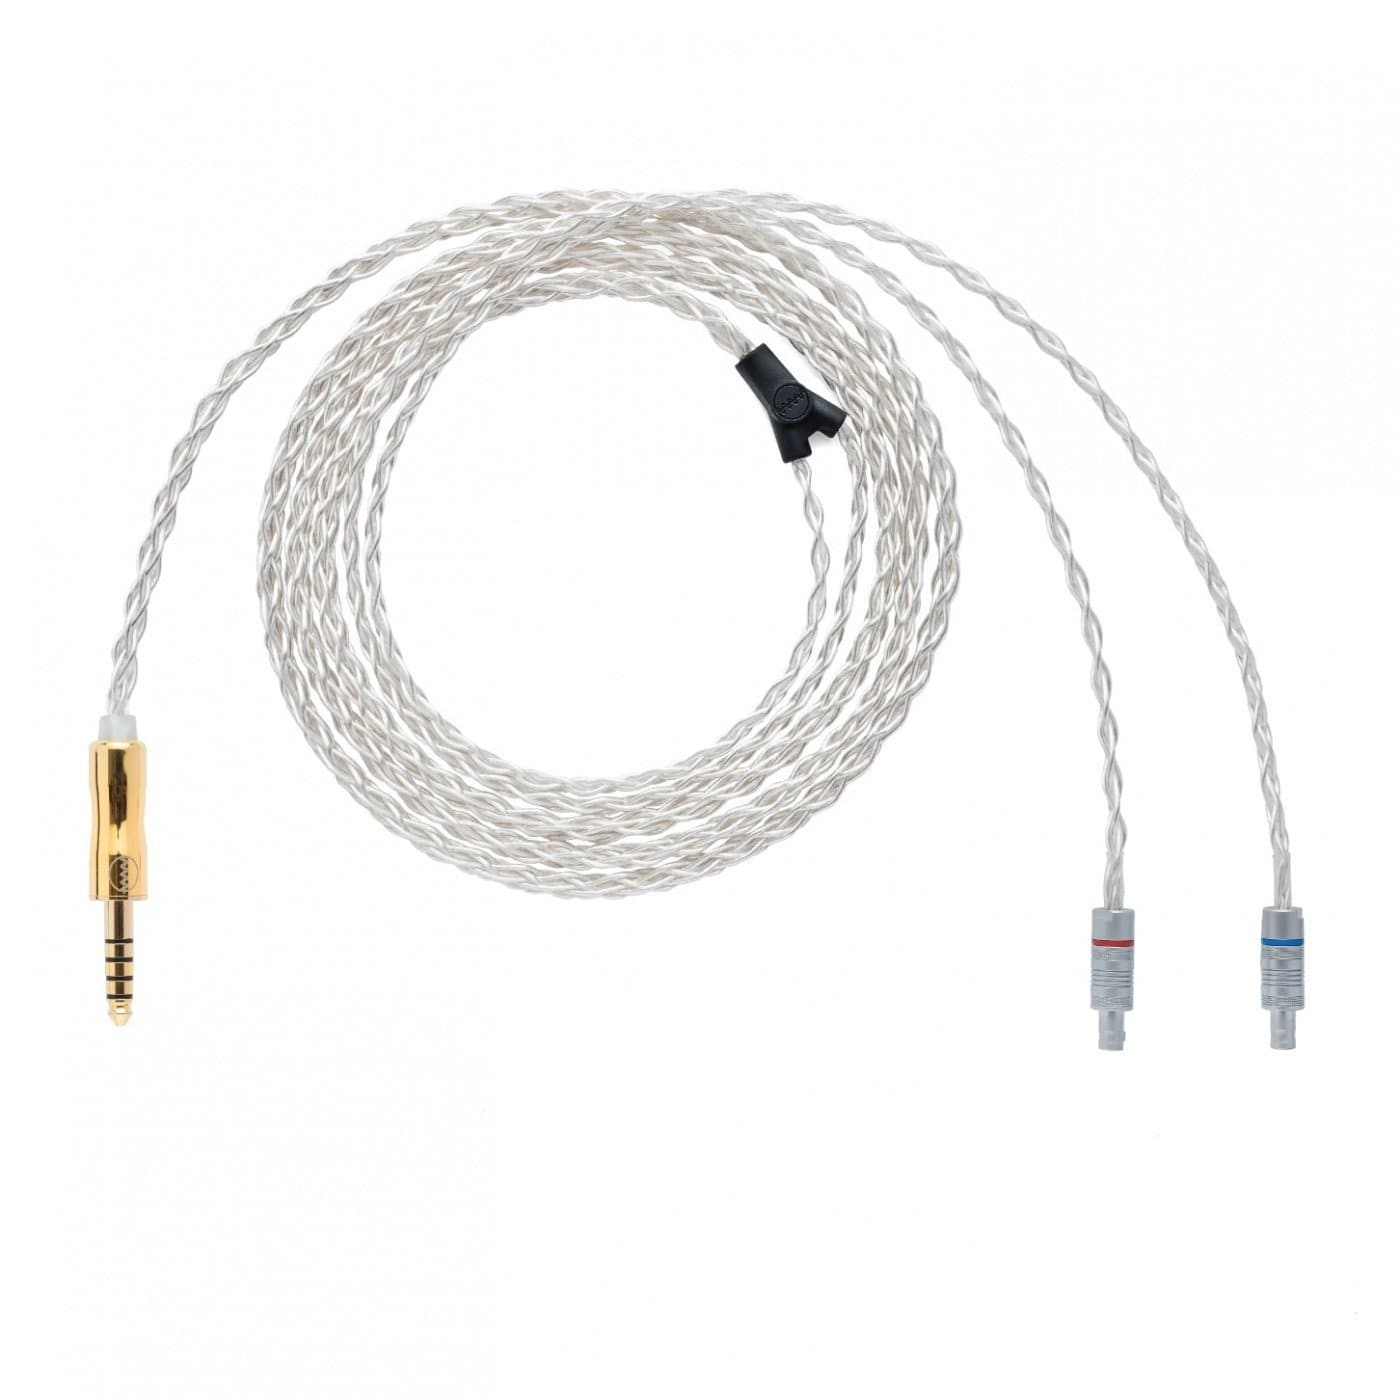 ALO Audio SXC 8 balanced 4.4mm cable